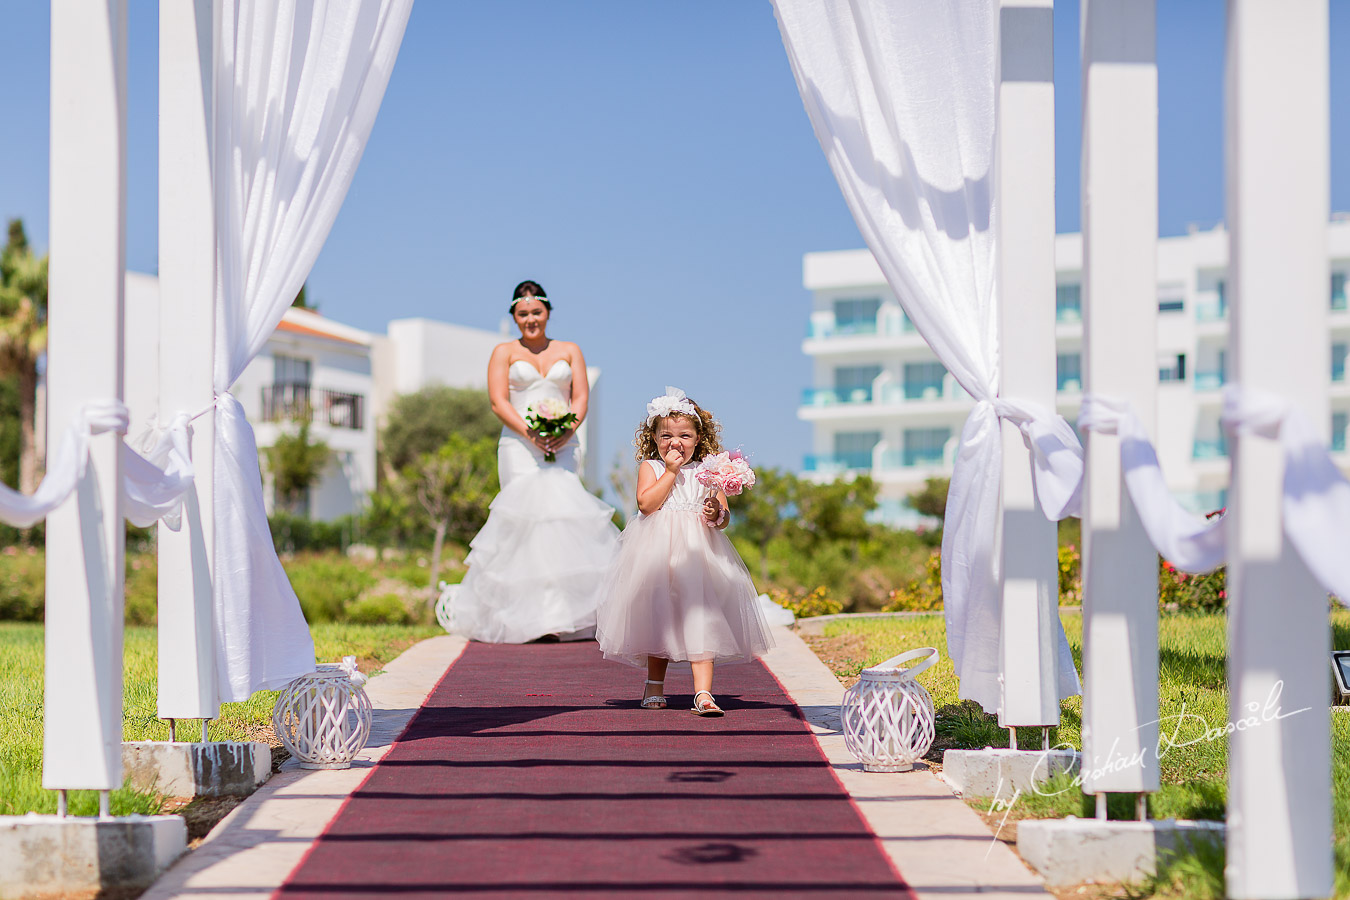 Eva, the flower girl and Amy, the bride, arriving at the wedding ceremony at King Elvelton Hotel and Resort in Paphos, Cyprus.